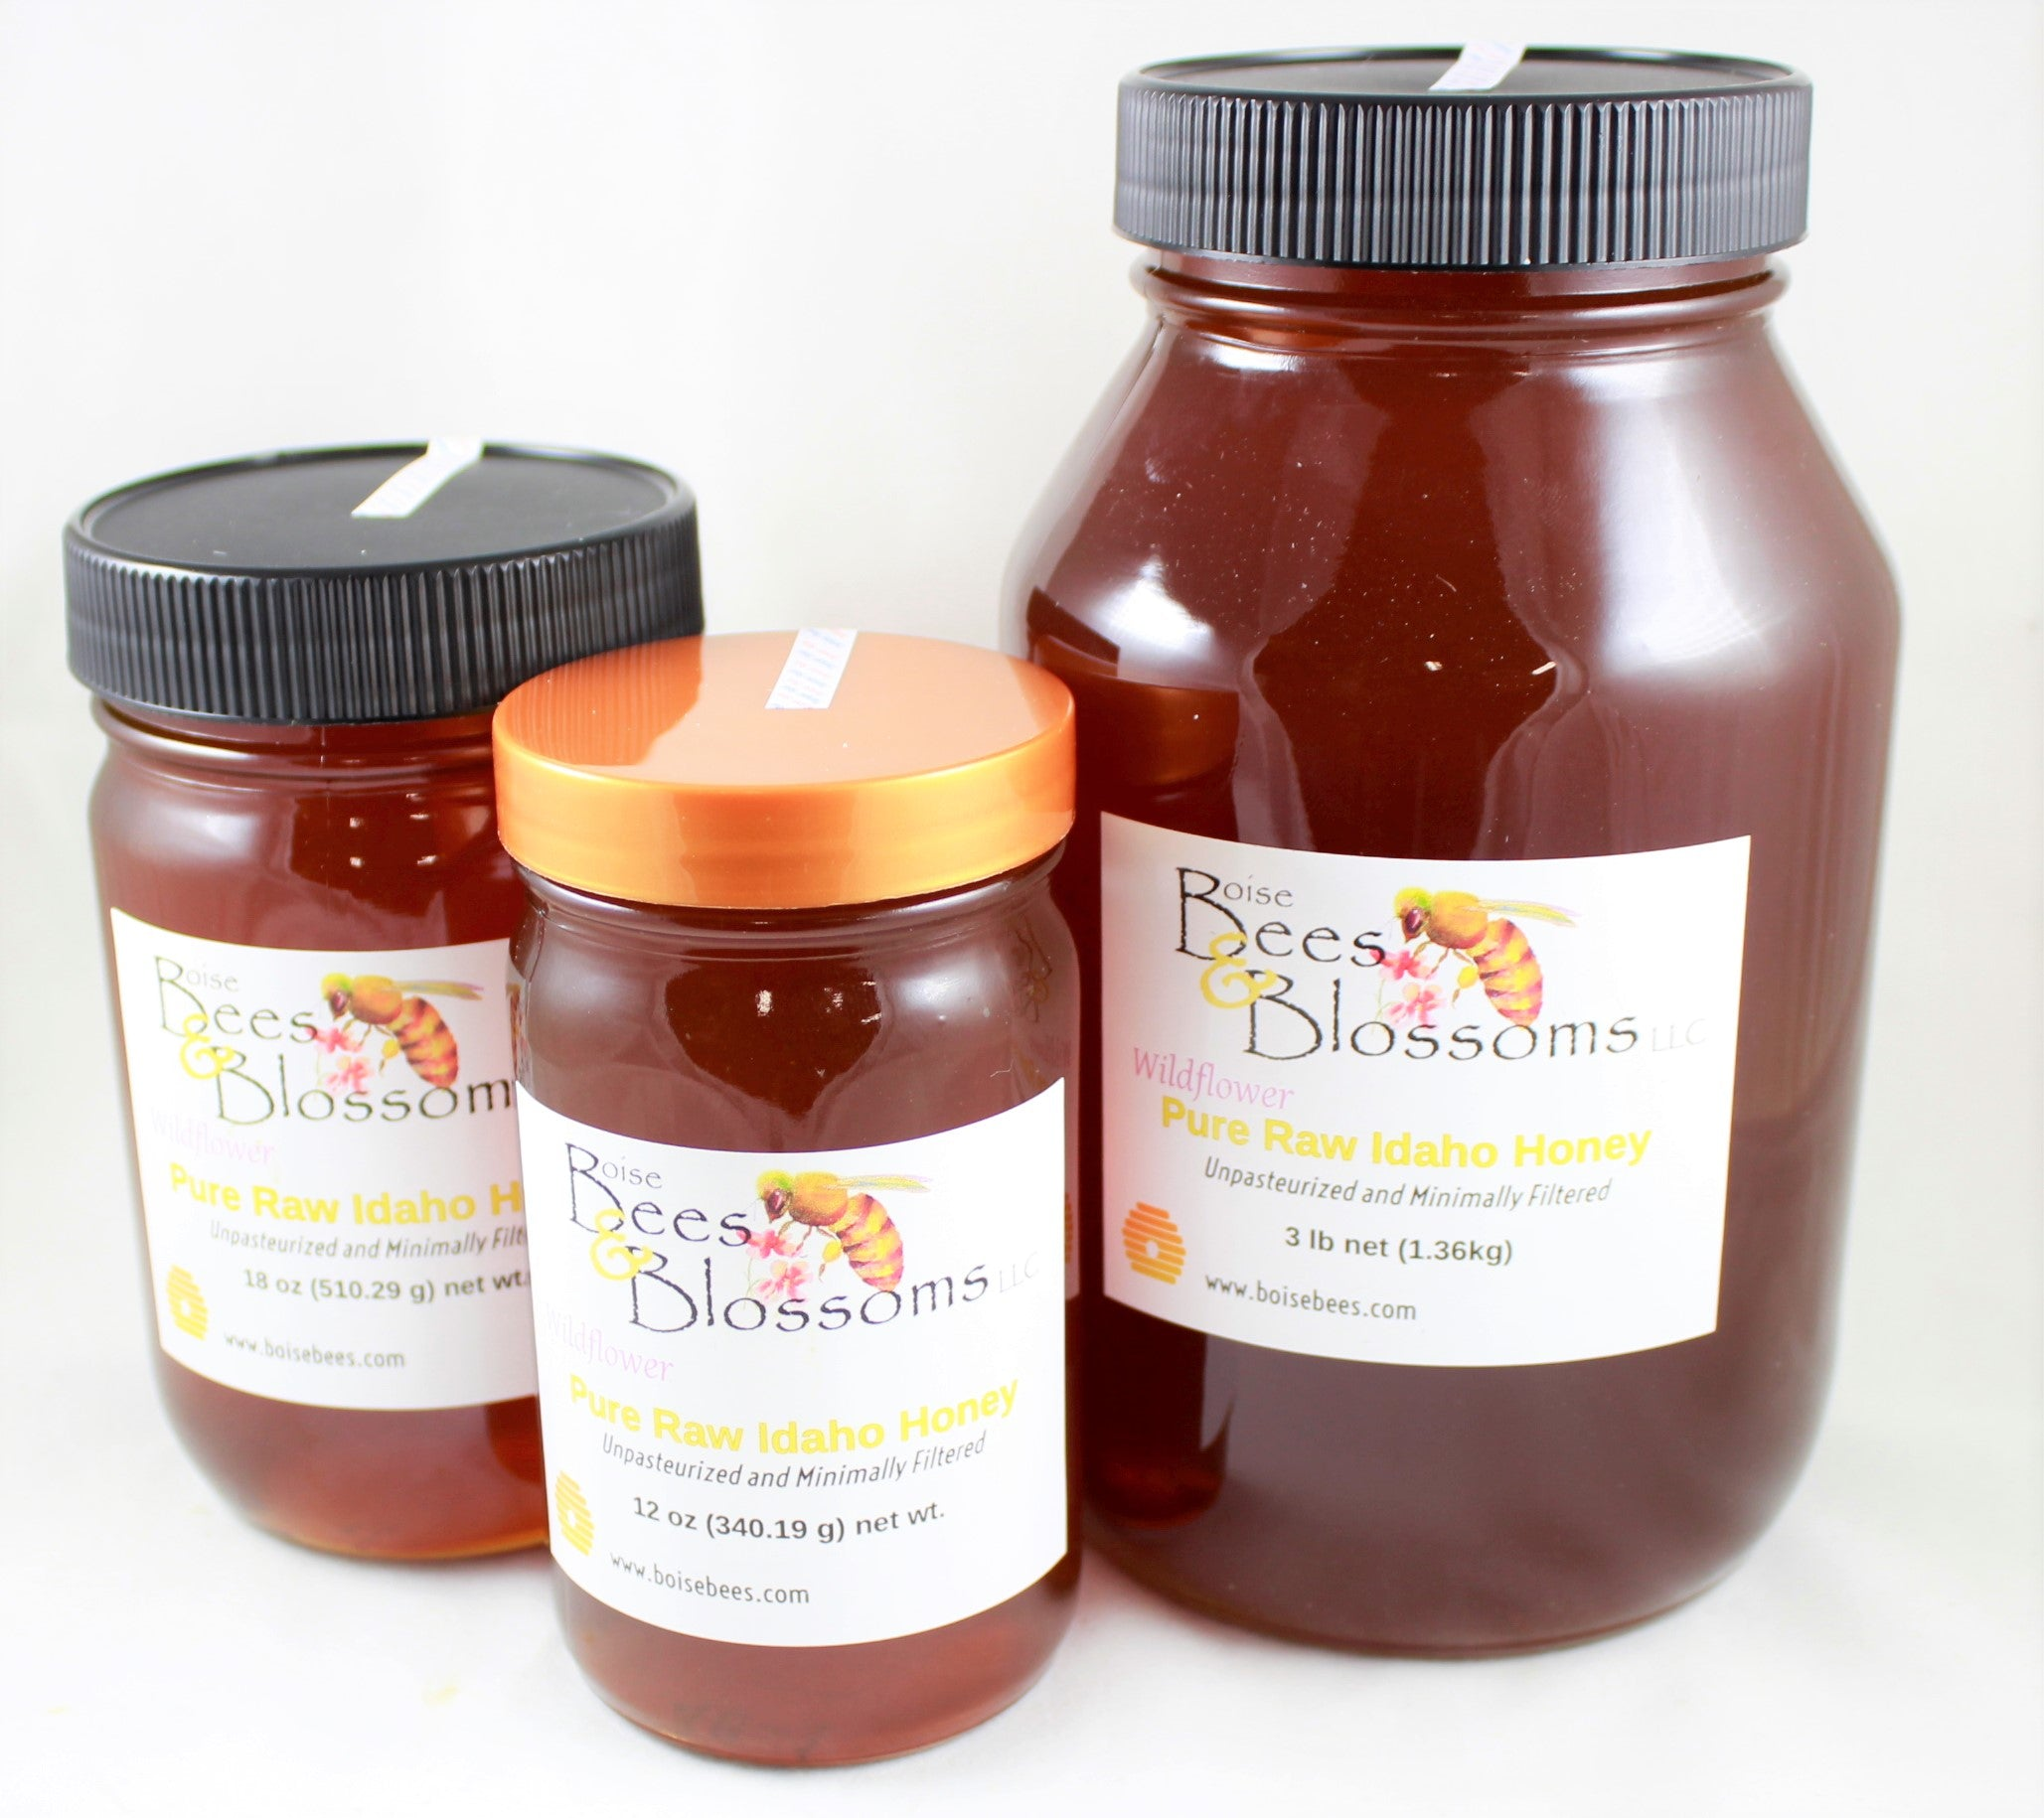 Raw Honey 3 lb jar (1.36kg)